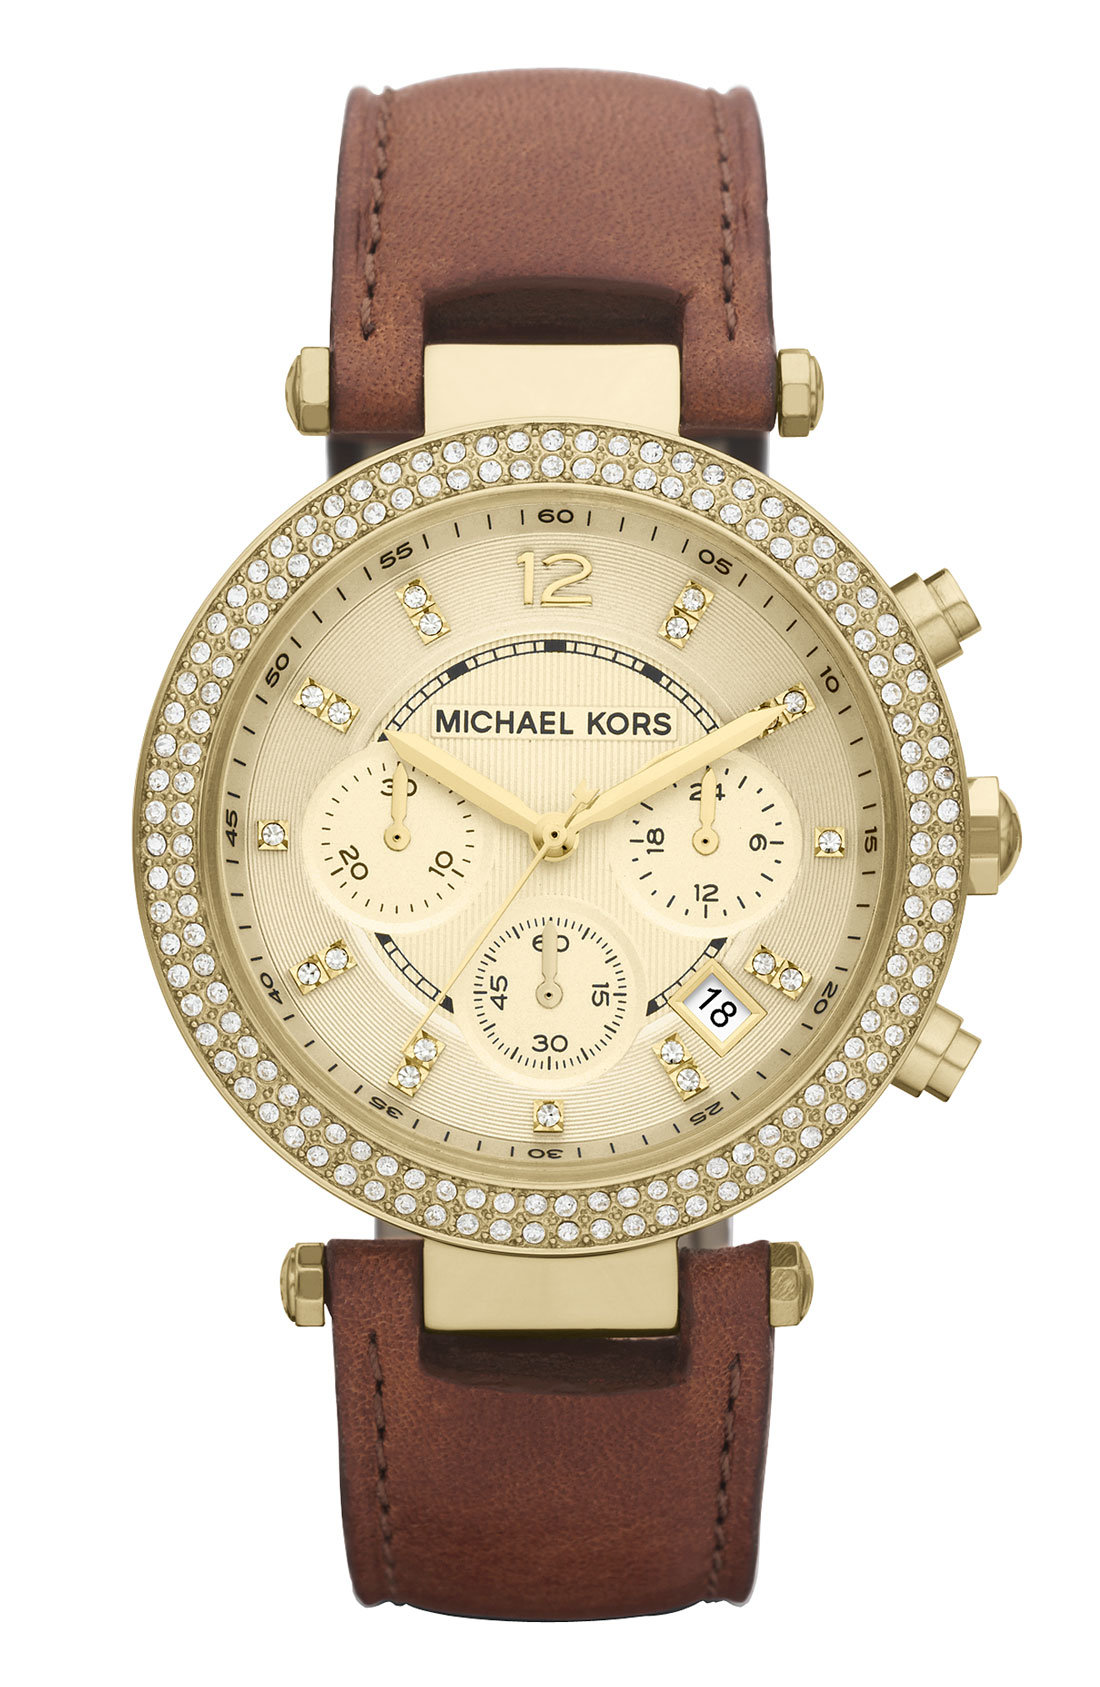 Michael Kors: Women's Clothing, Shoes & Accessories | NordstromAlterations Available · Shop Top Brands · Get Nordstrom RewardsBrands: Vince, Moncler, Hugo Boss, Converse, Burberry, St John, Vineyard Vines.